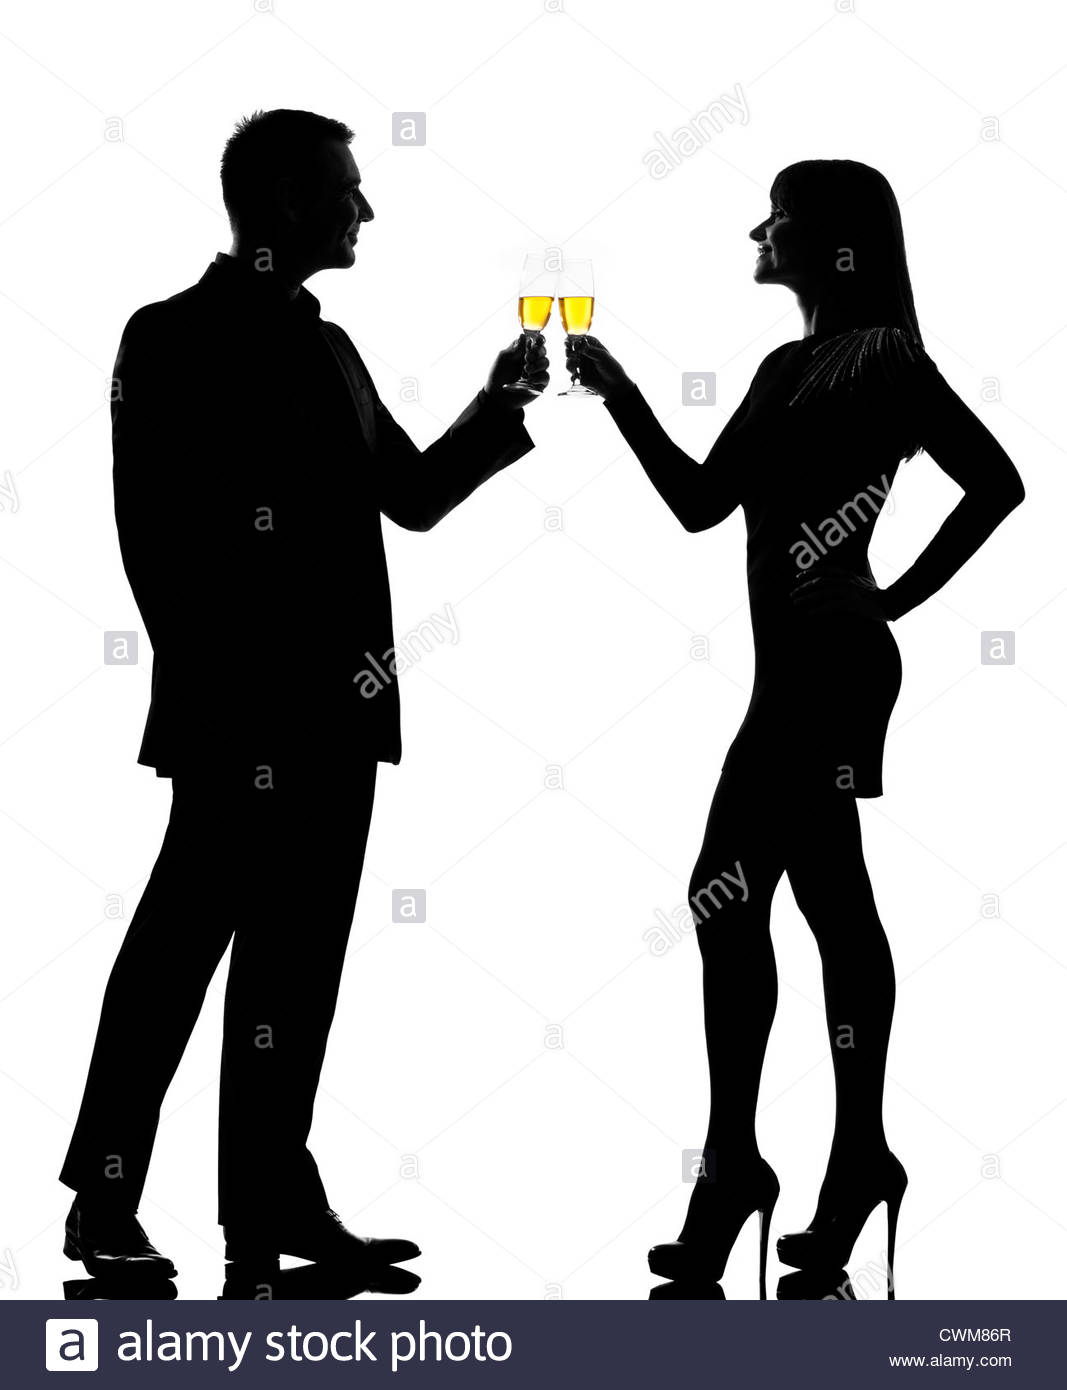 1067x1390 Full Length Silhouette Couple Standing Stock Photos Amp Full Length